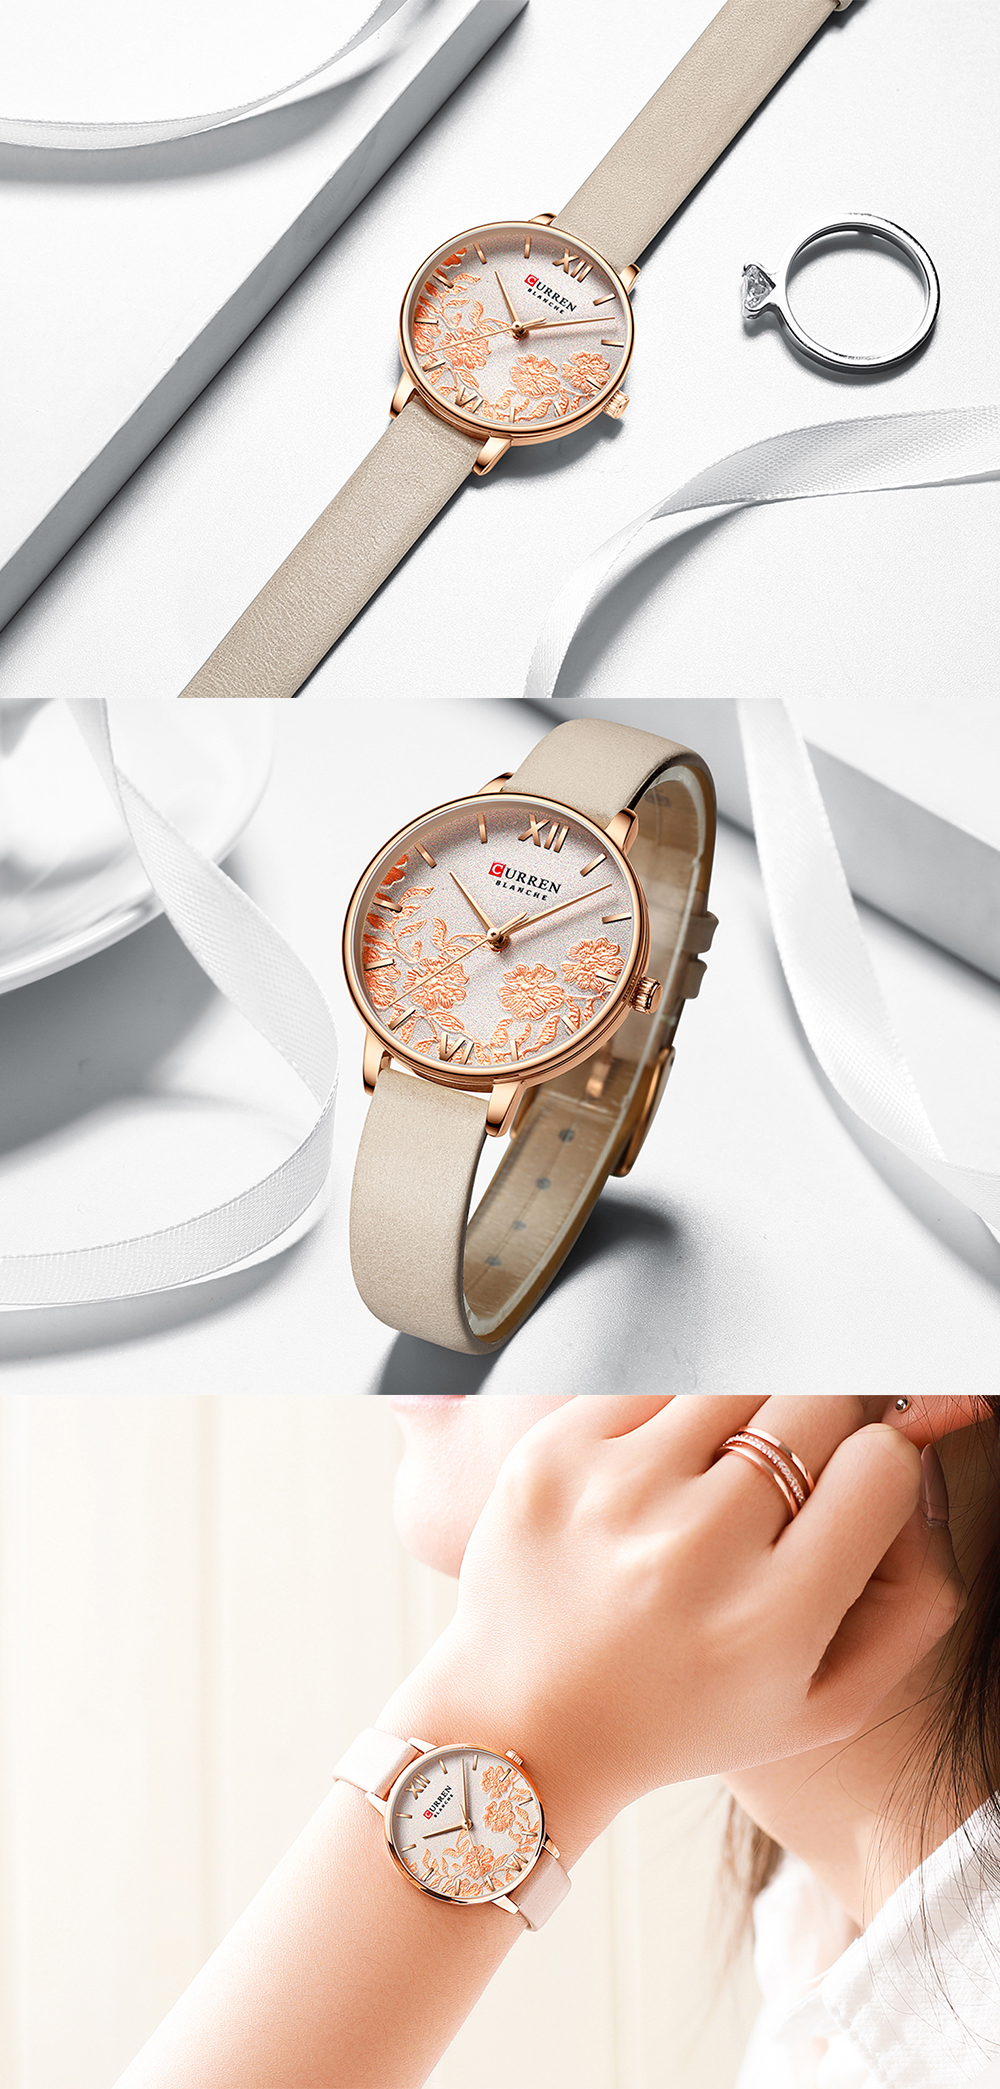 Top Brand Luxury Stainless Steel Ladies Watch HTB1bbbfaUGF3KVjSZFvq6z nXXaf Ladies watch